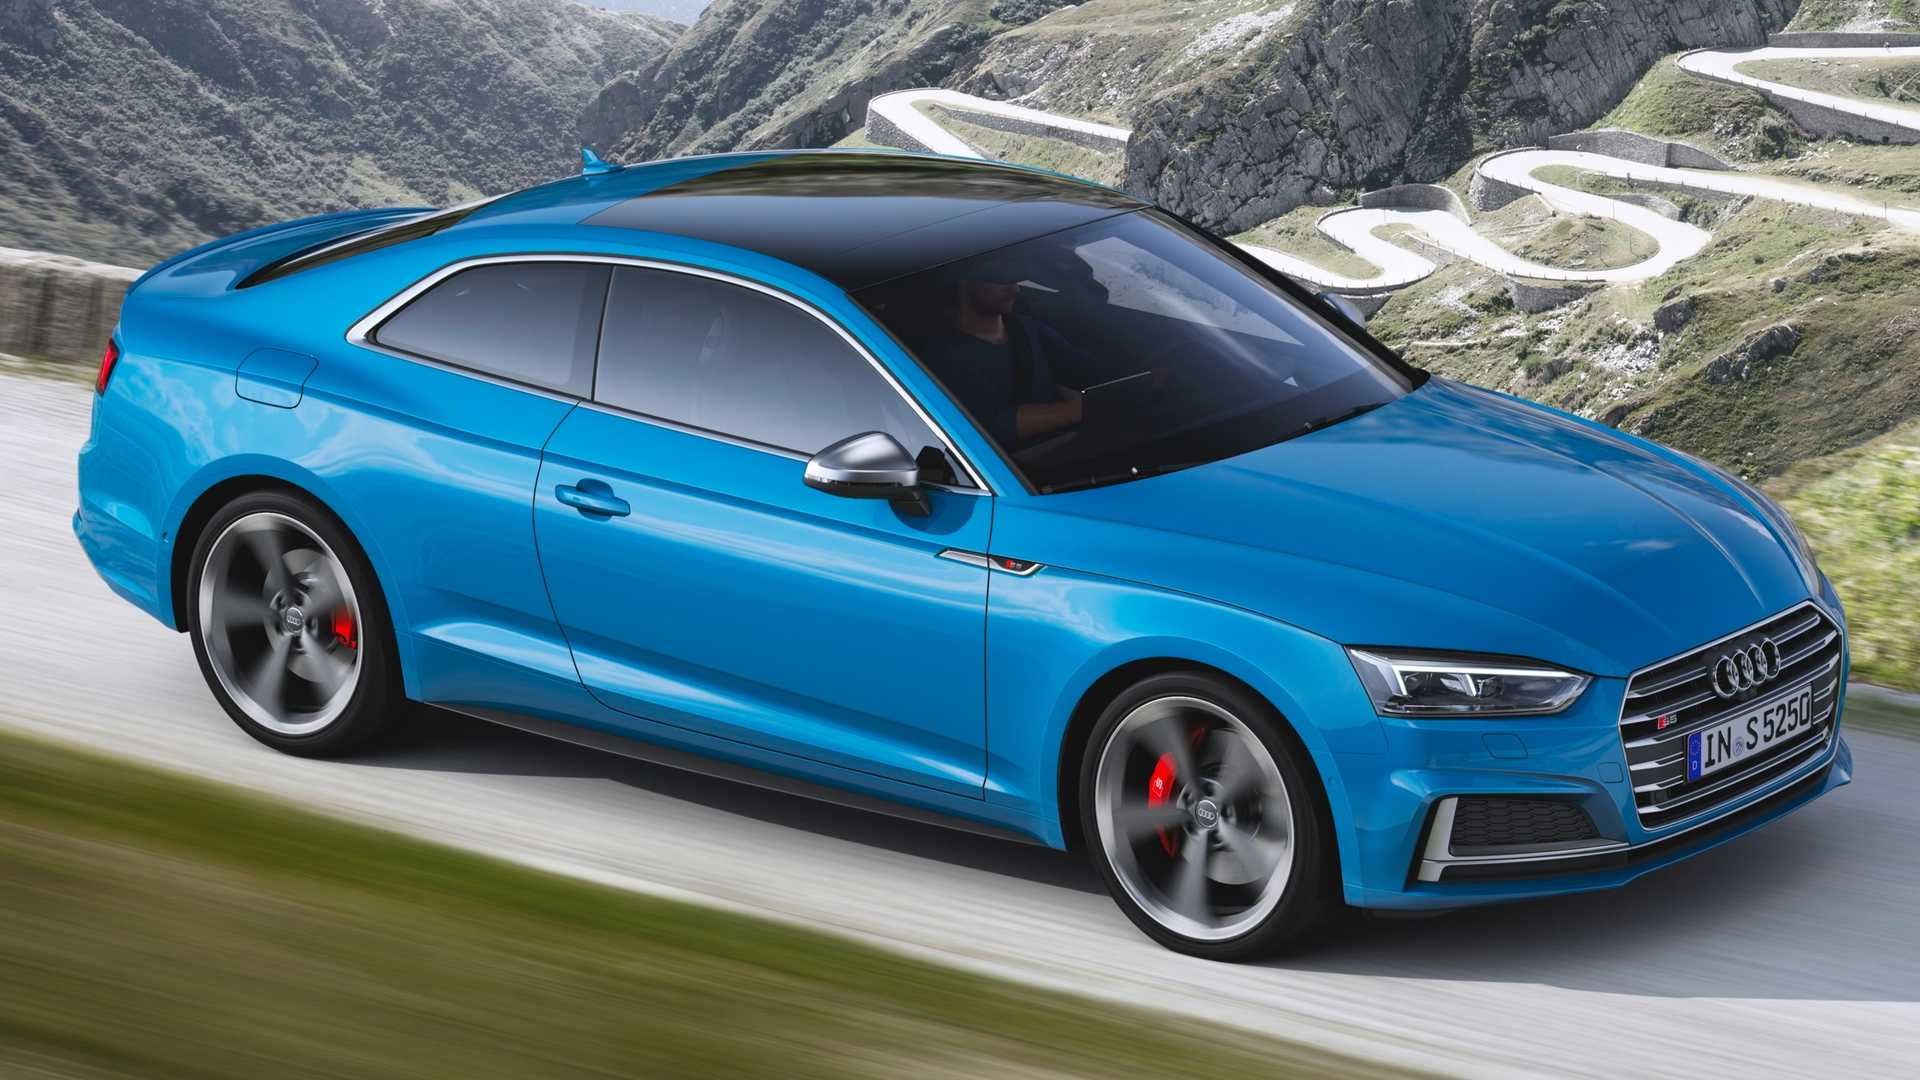 63 New 2019 Audi S5 Price And Release Date